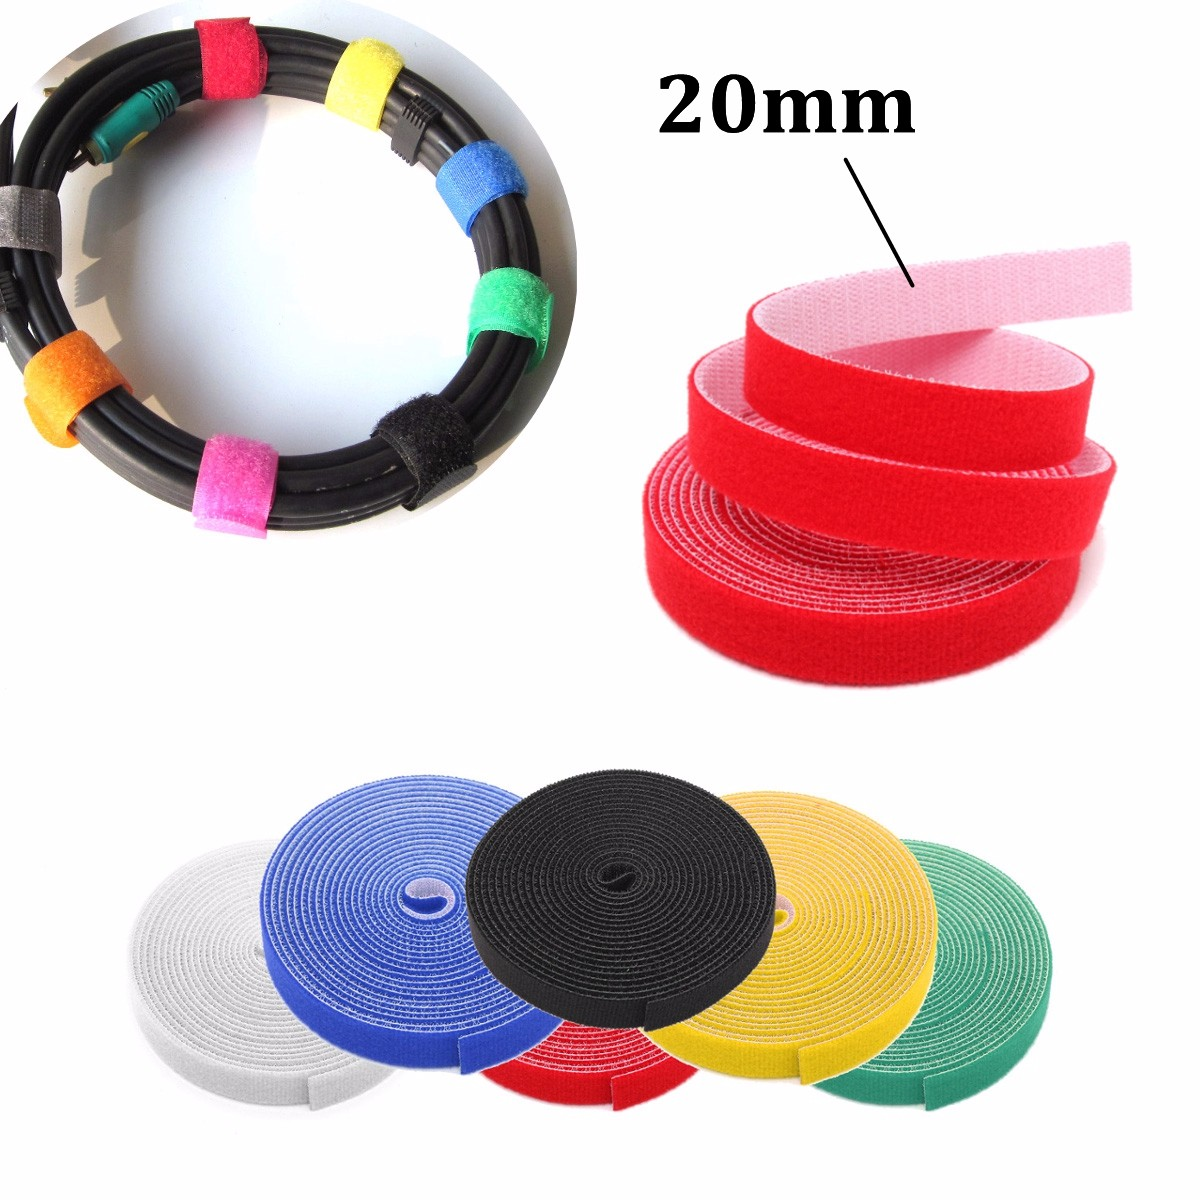 20mm 4.5m Multifunctional Self Adhesive Magic Stick Loop Tape Fasten Stick Cable Tie